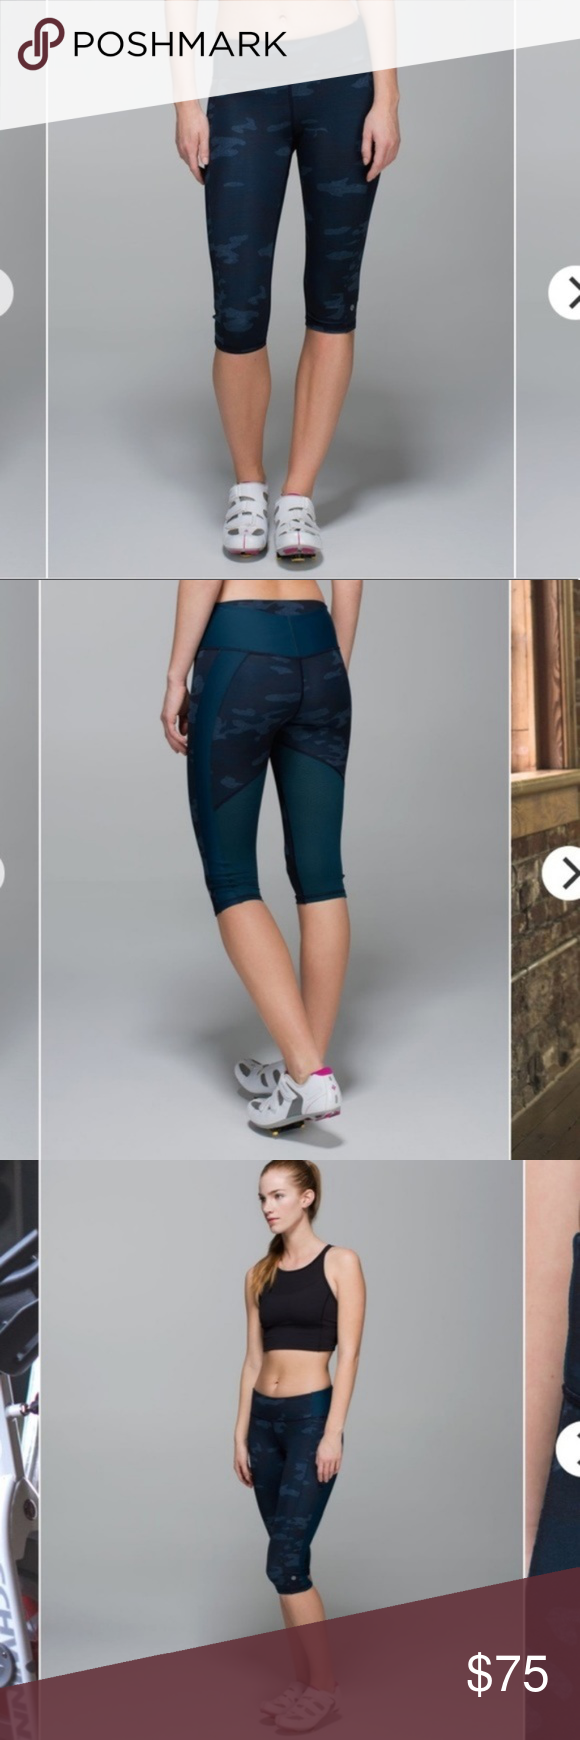 How To Get An Oil Stain Out Of Lululemon